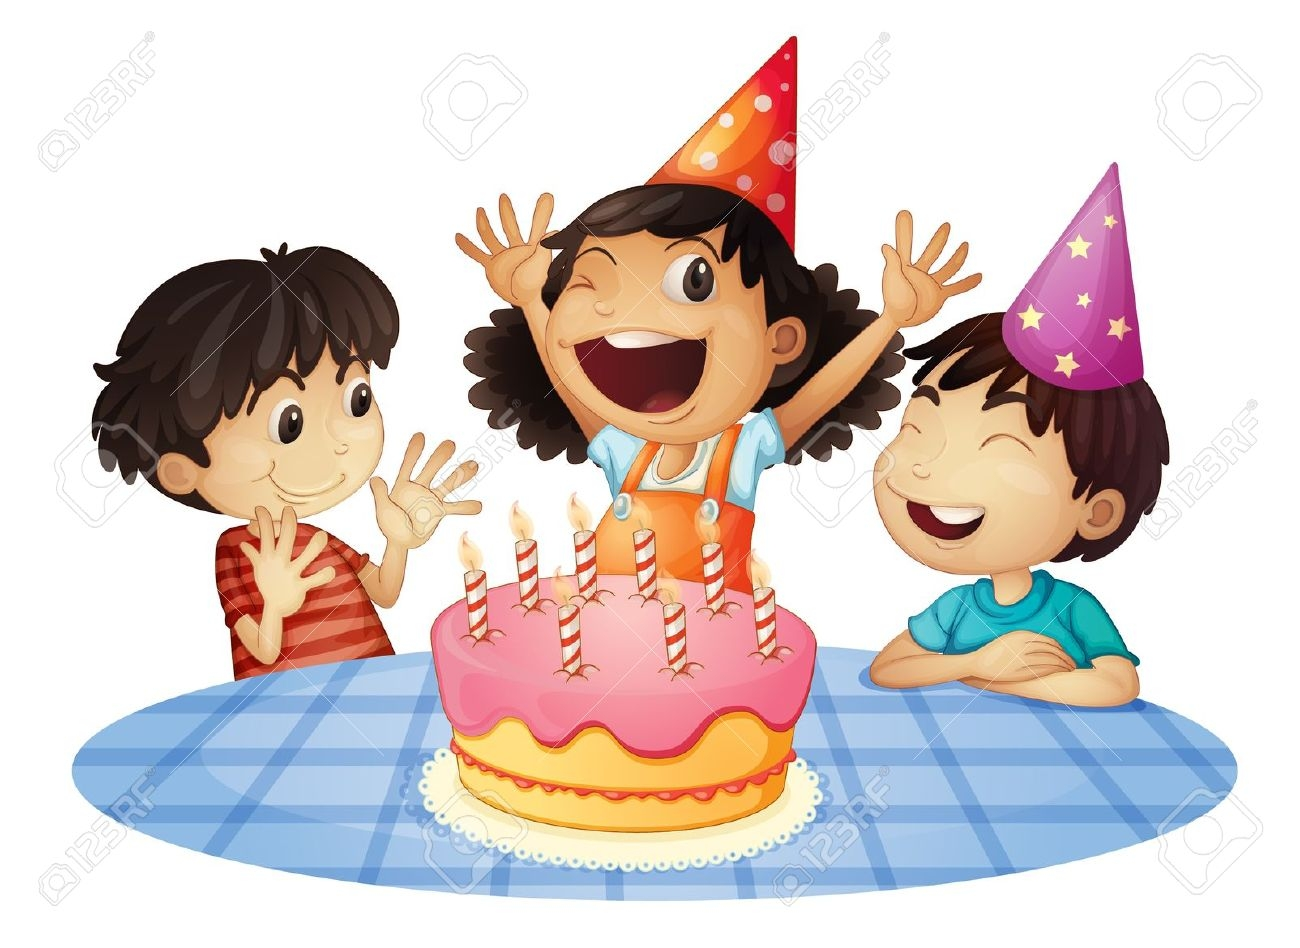 Free Cliparts Birthday Party, Download Free Clip Art, Free Clip Art ... jpg freeuse